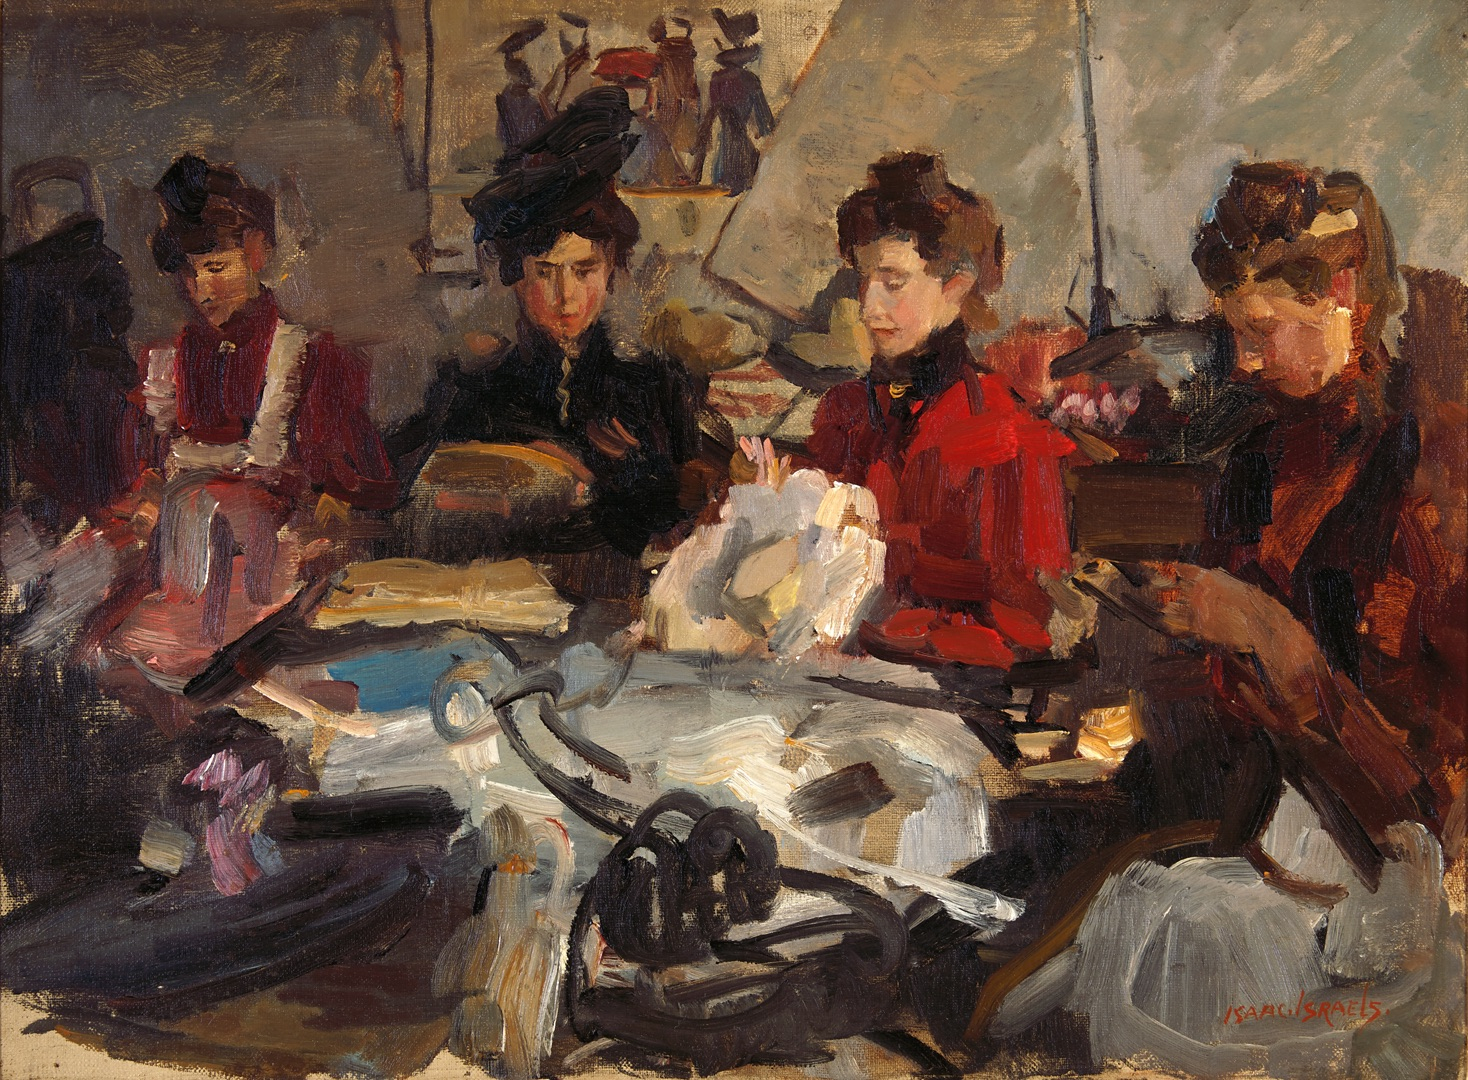 Isaac Israels. Modinettes at work - Isaac Israels | Fijnaut